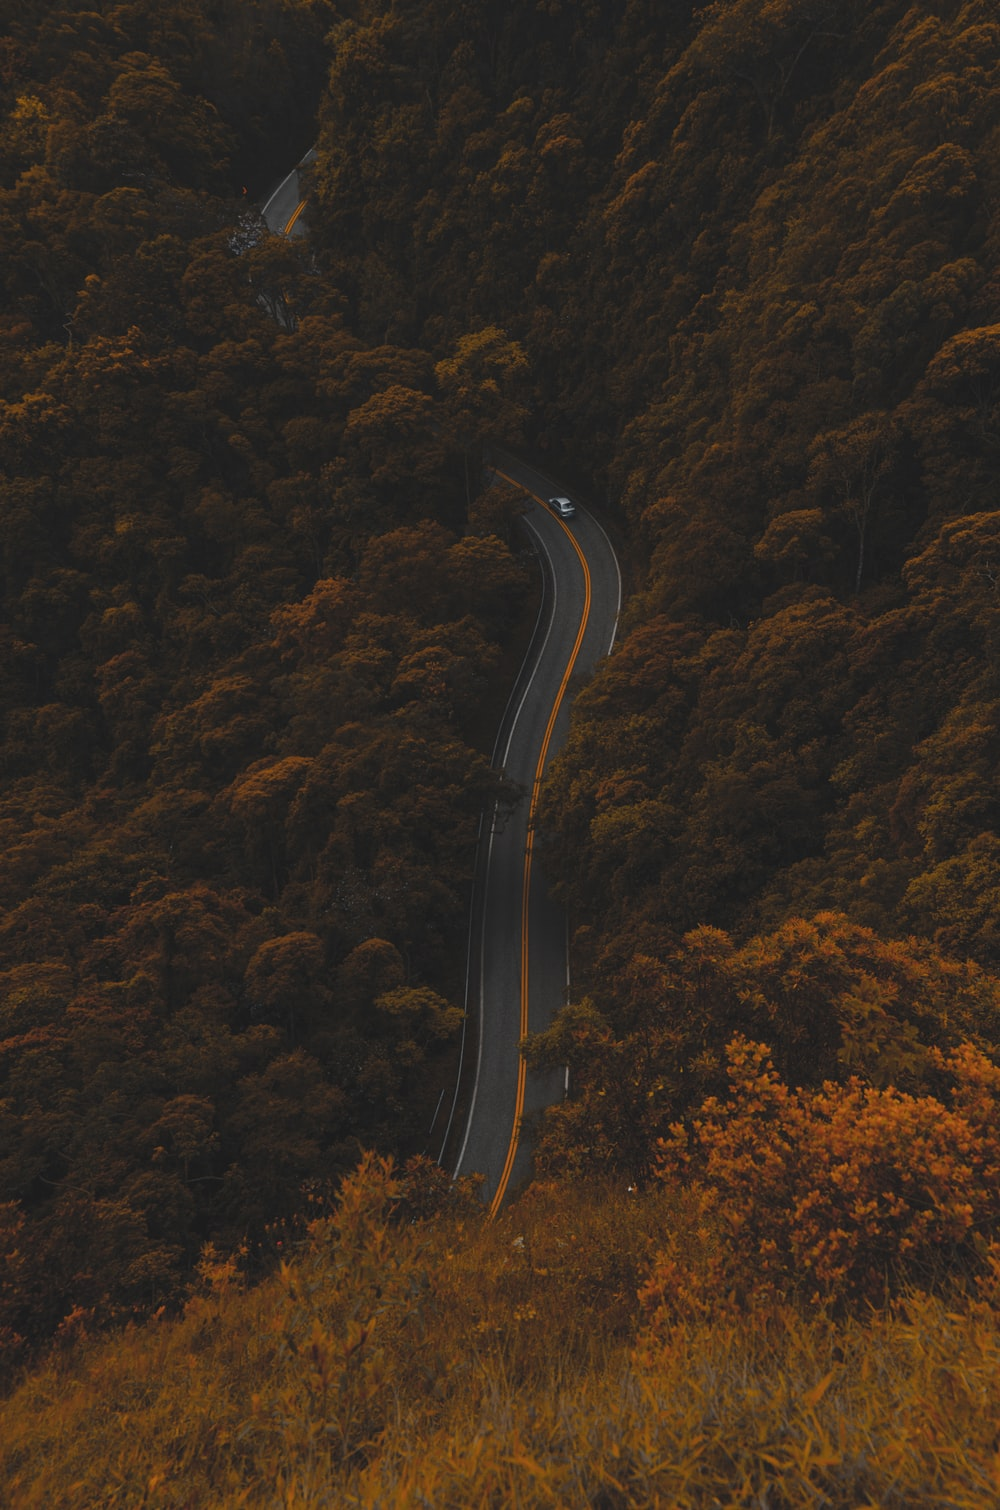 high-angle photography of road between trees